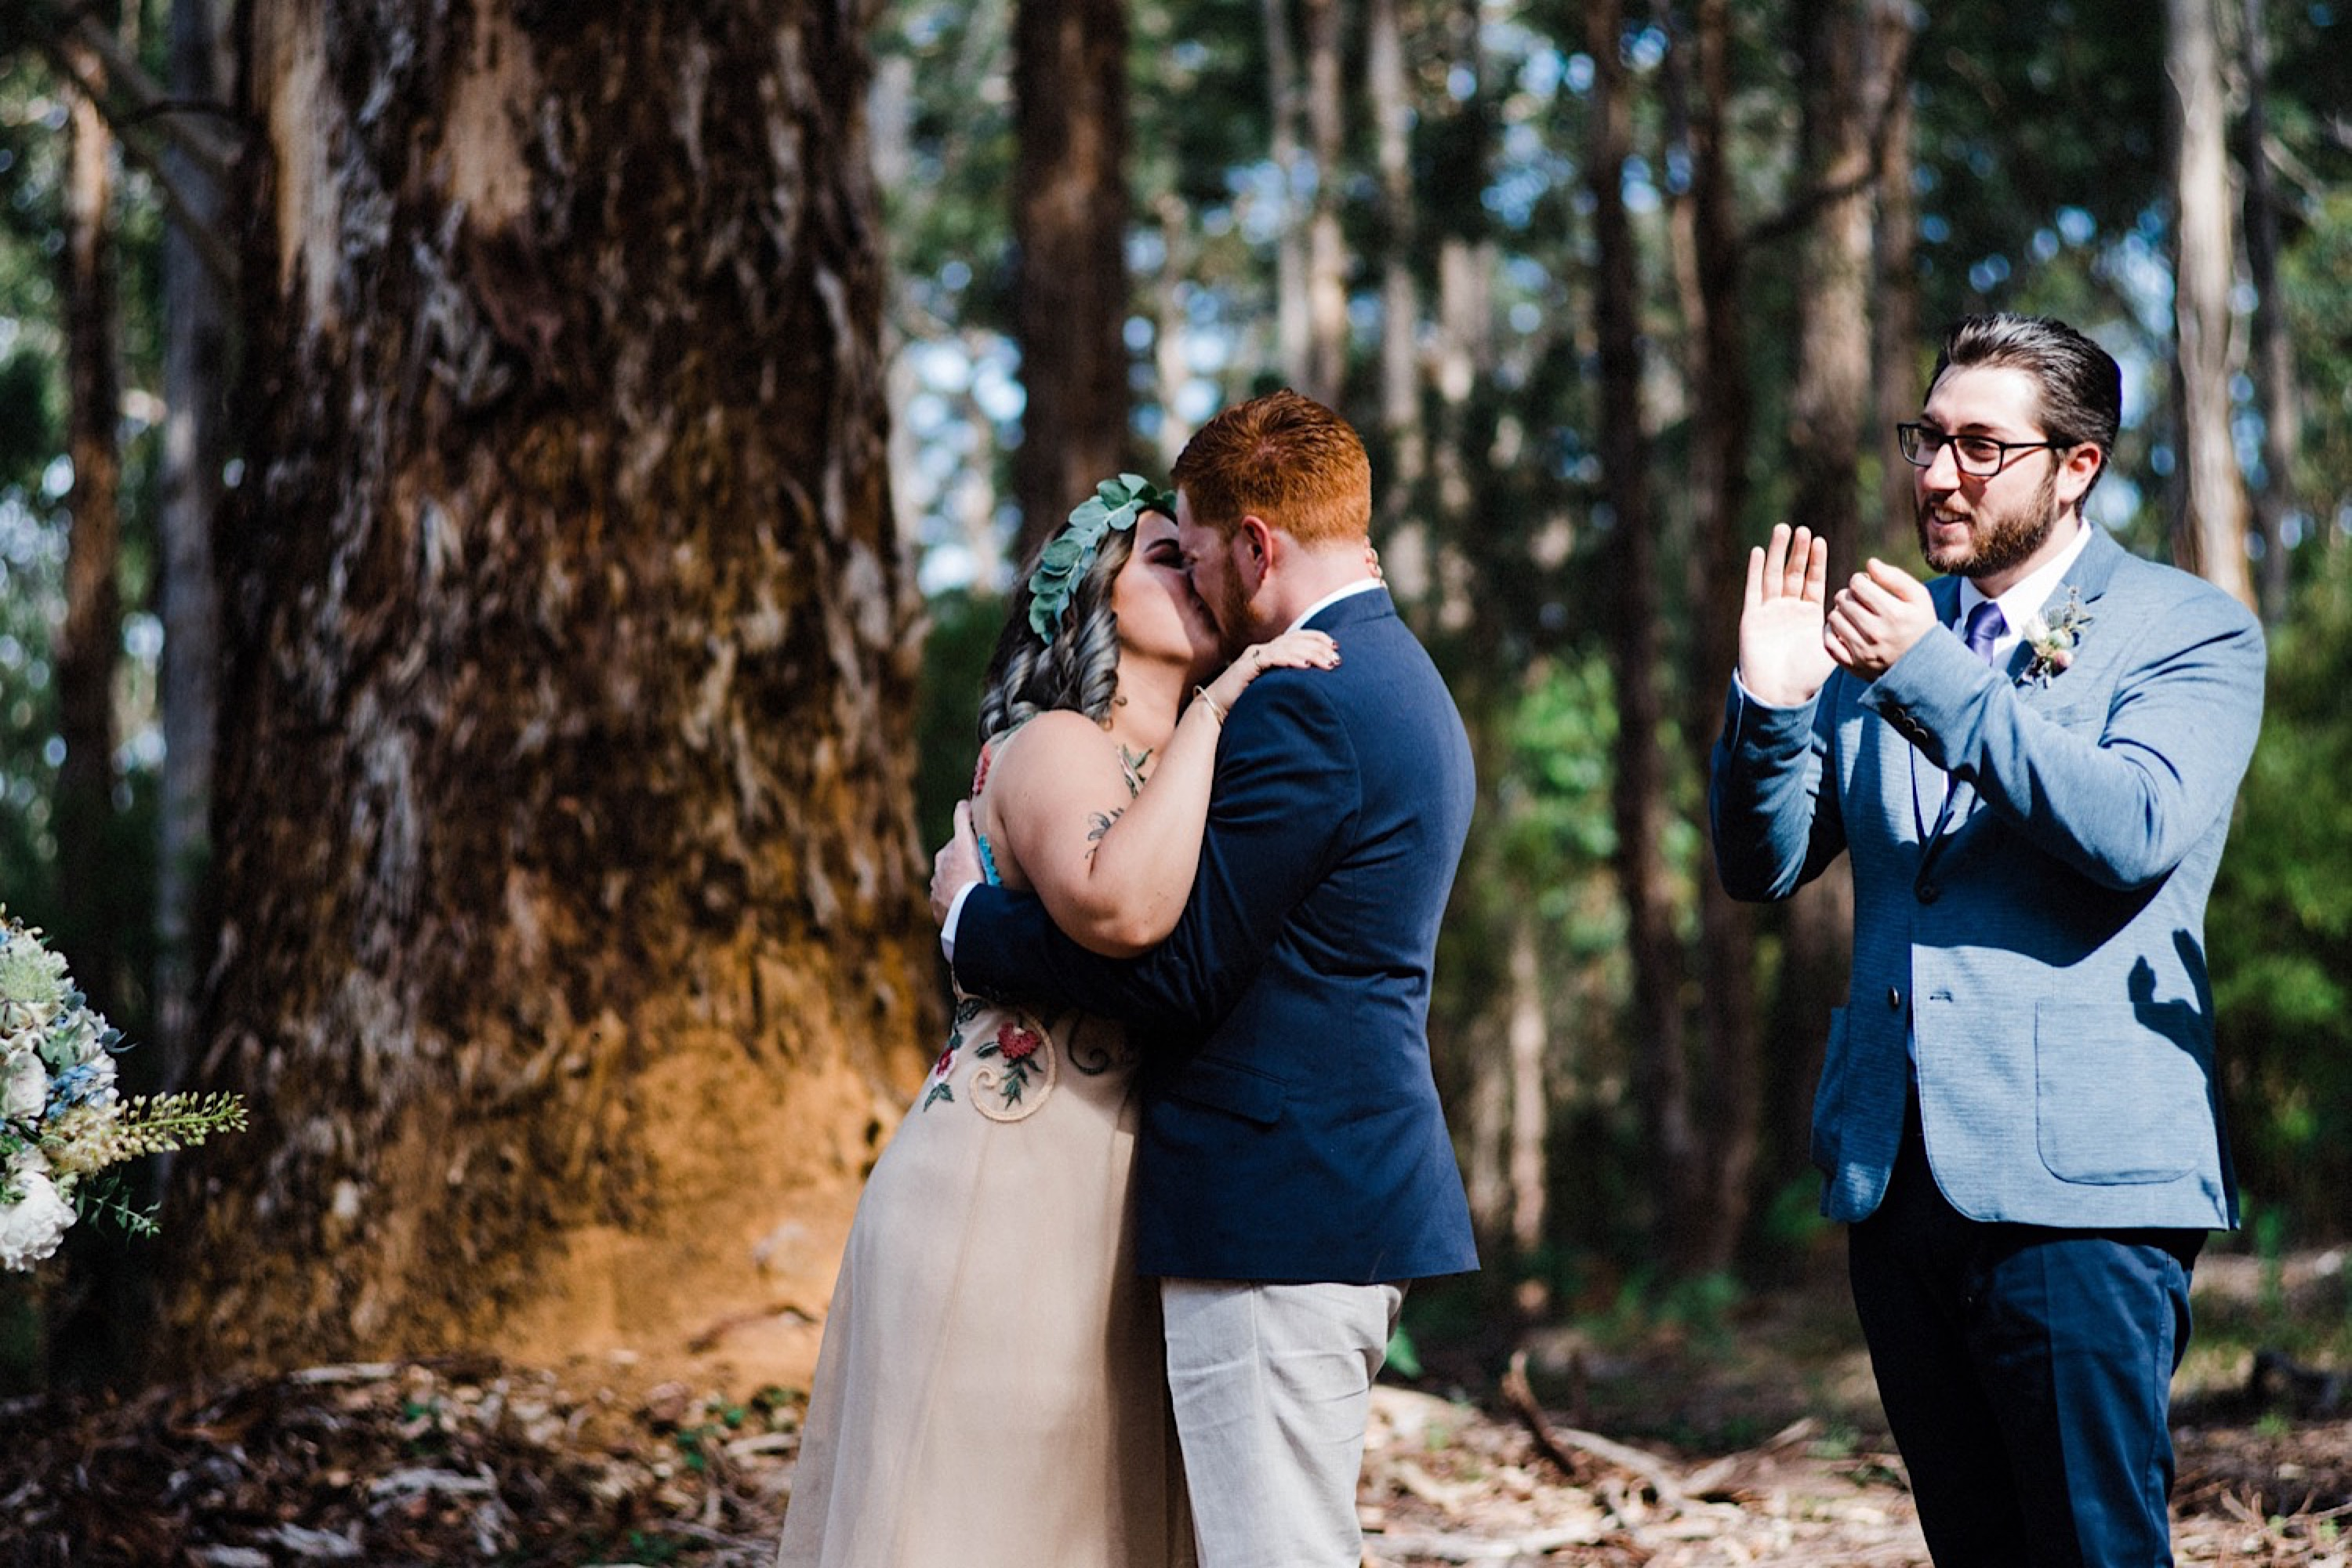 A documentary wedding photo of the bride & groom's first kiss at their Donnelly River Wedding.